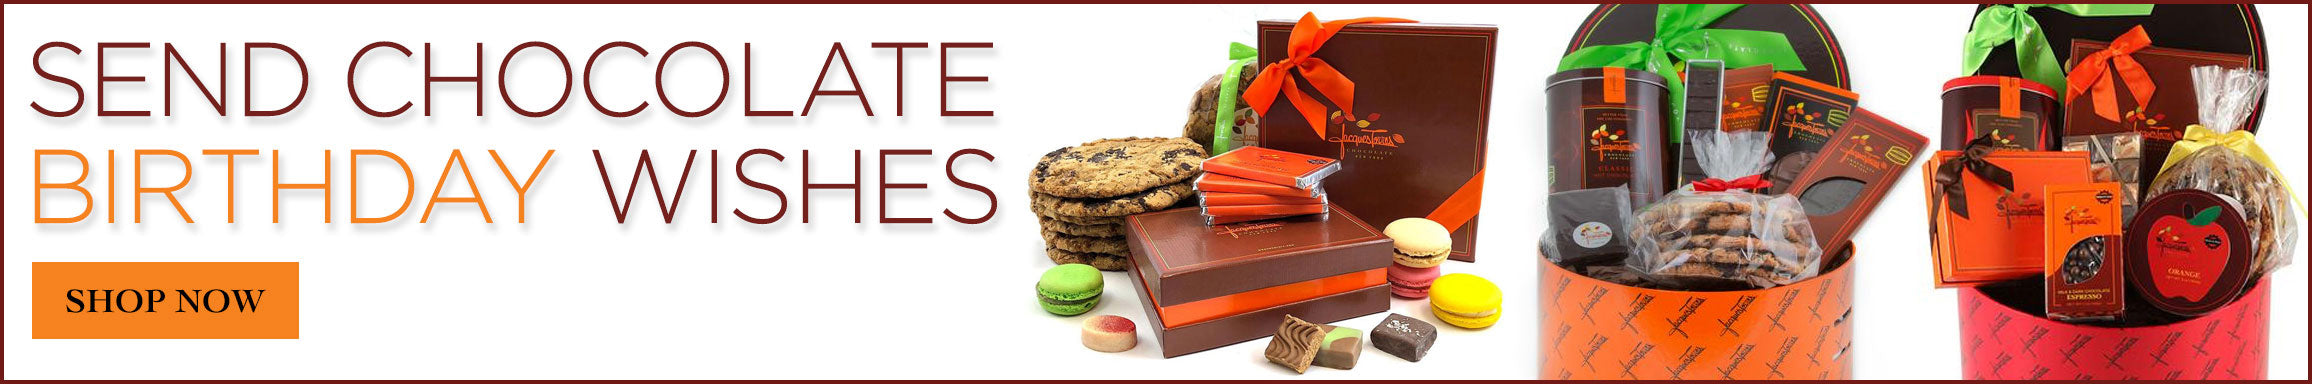 Send birthday wishes with Chocolate - Shop Now